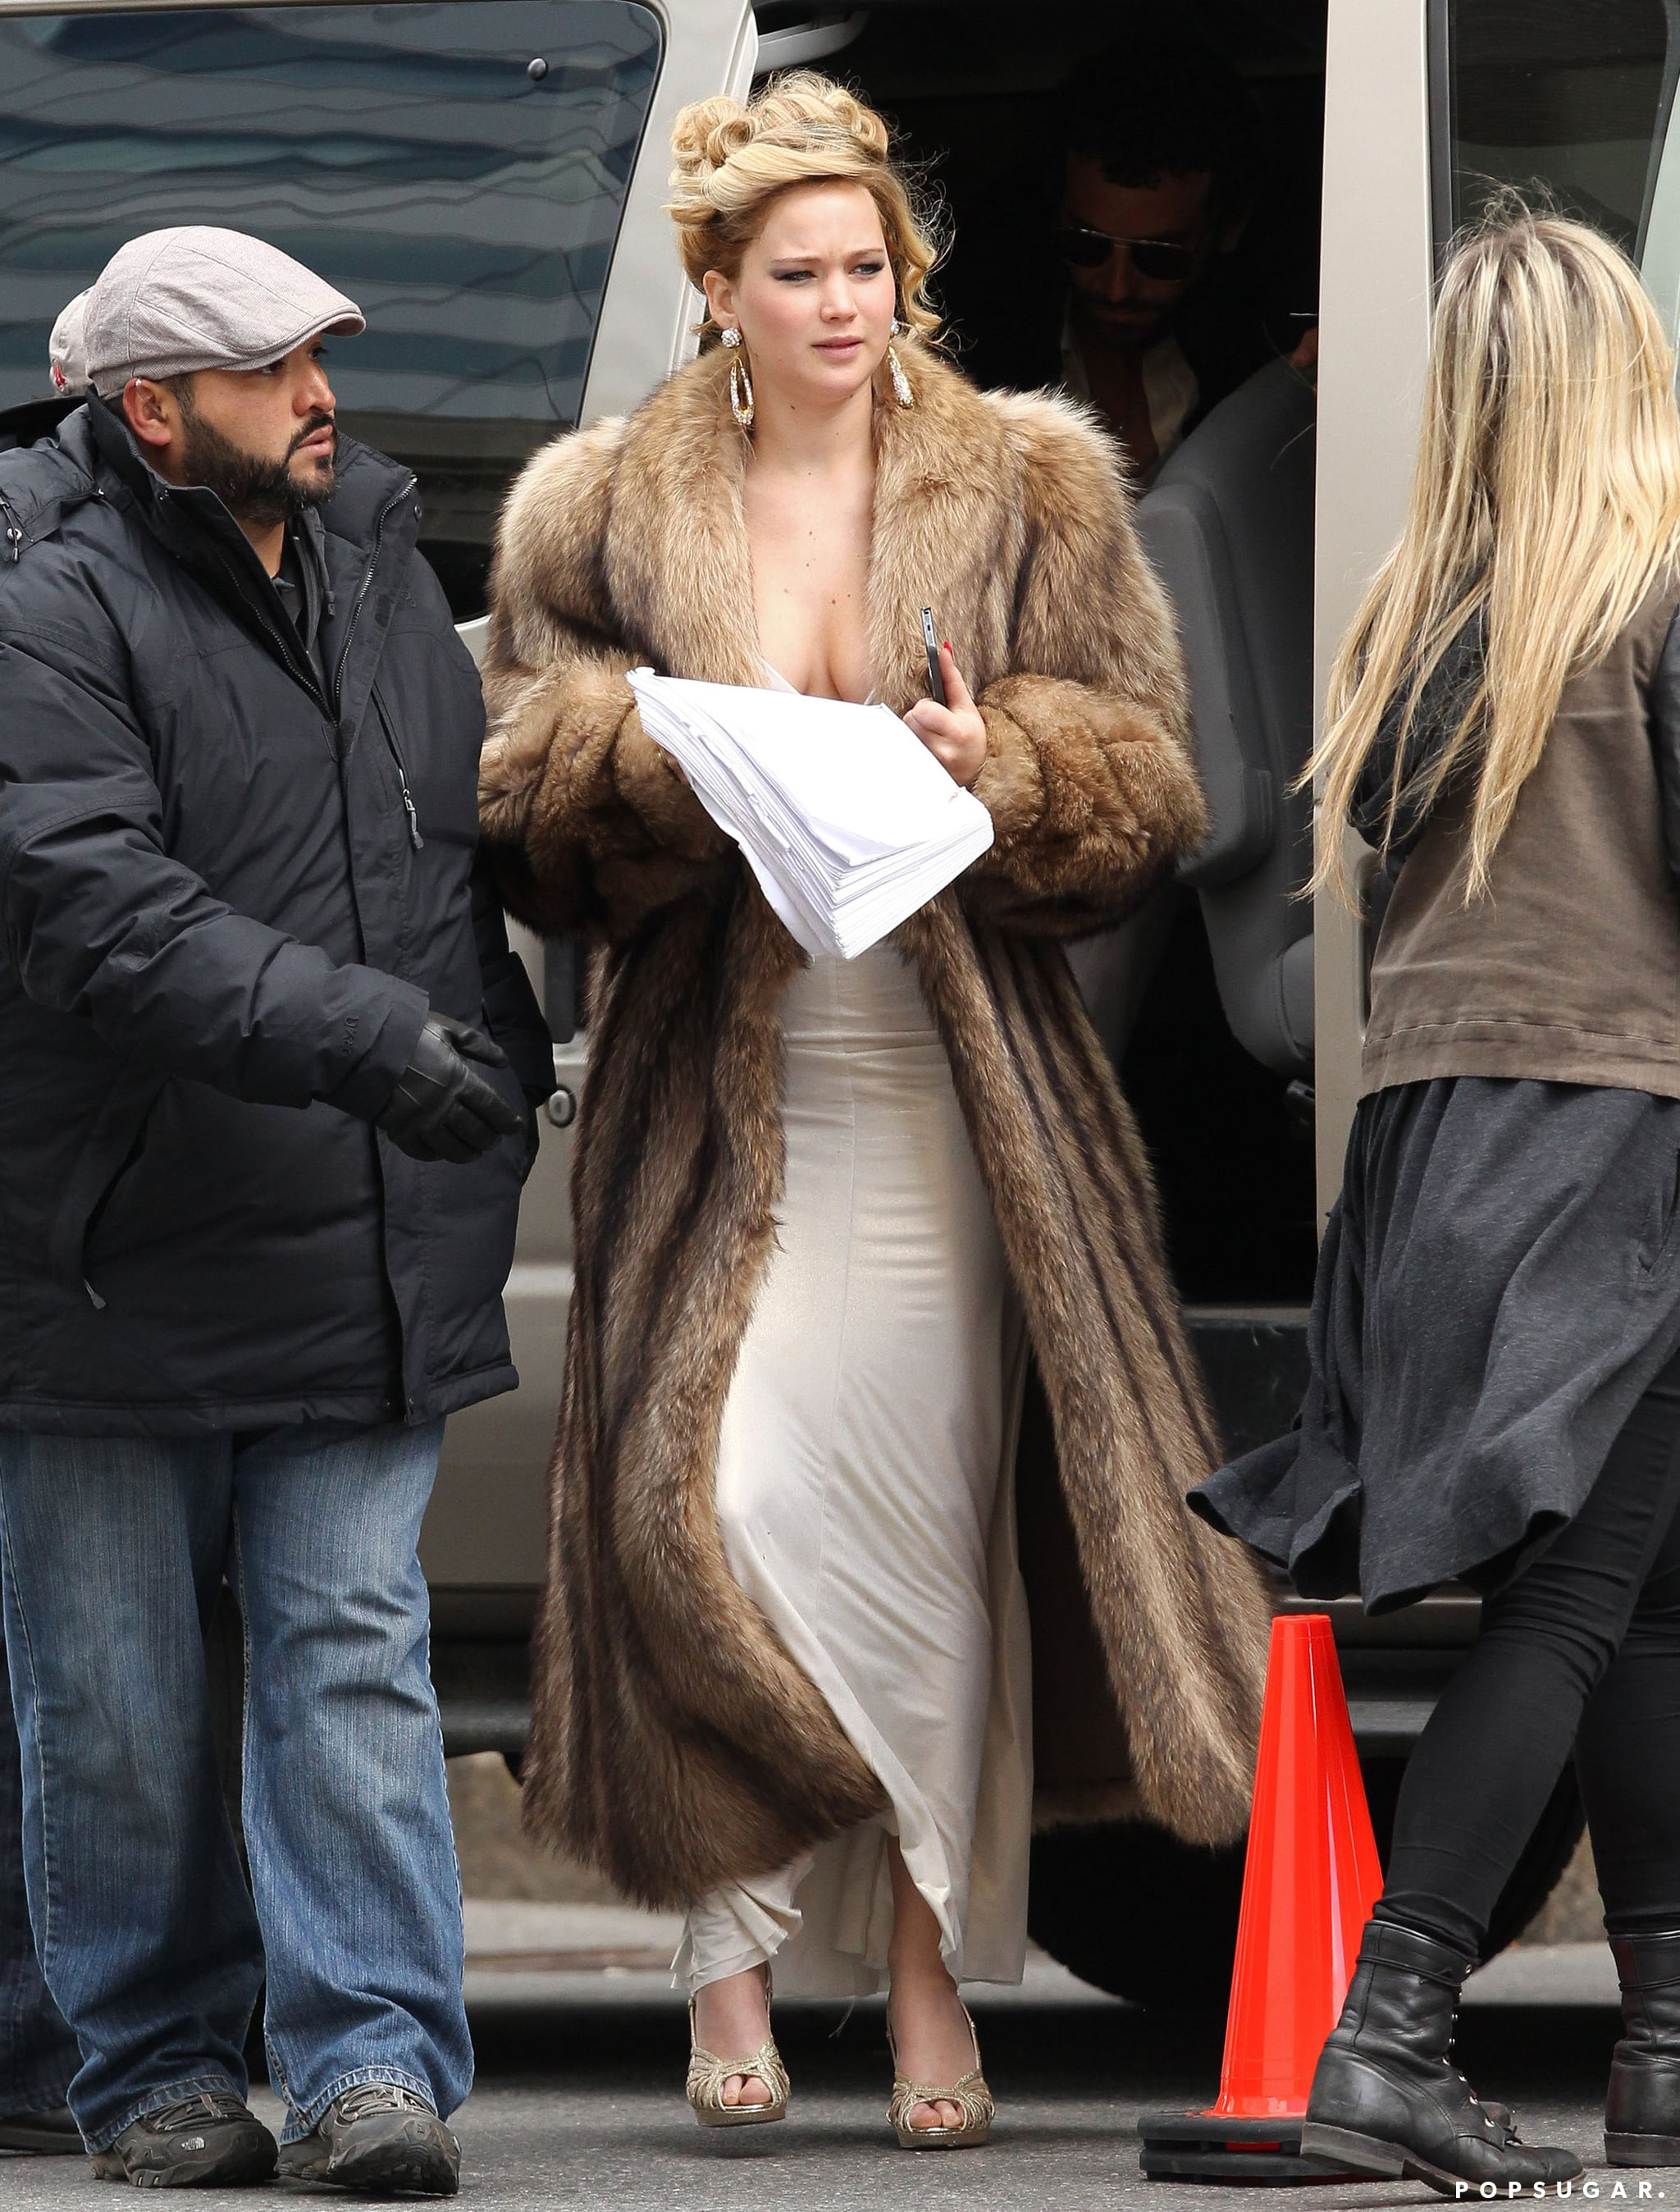 Jennifer Lawrence hid her cleavage under a fur jacket on set in Boston.